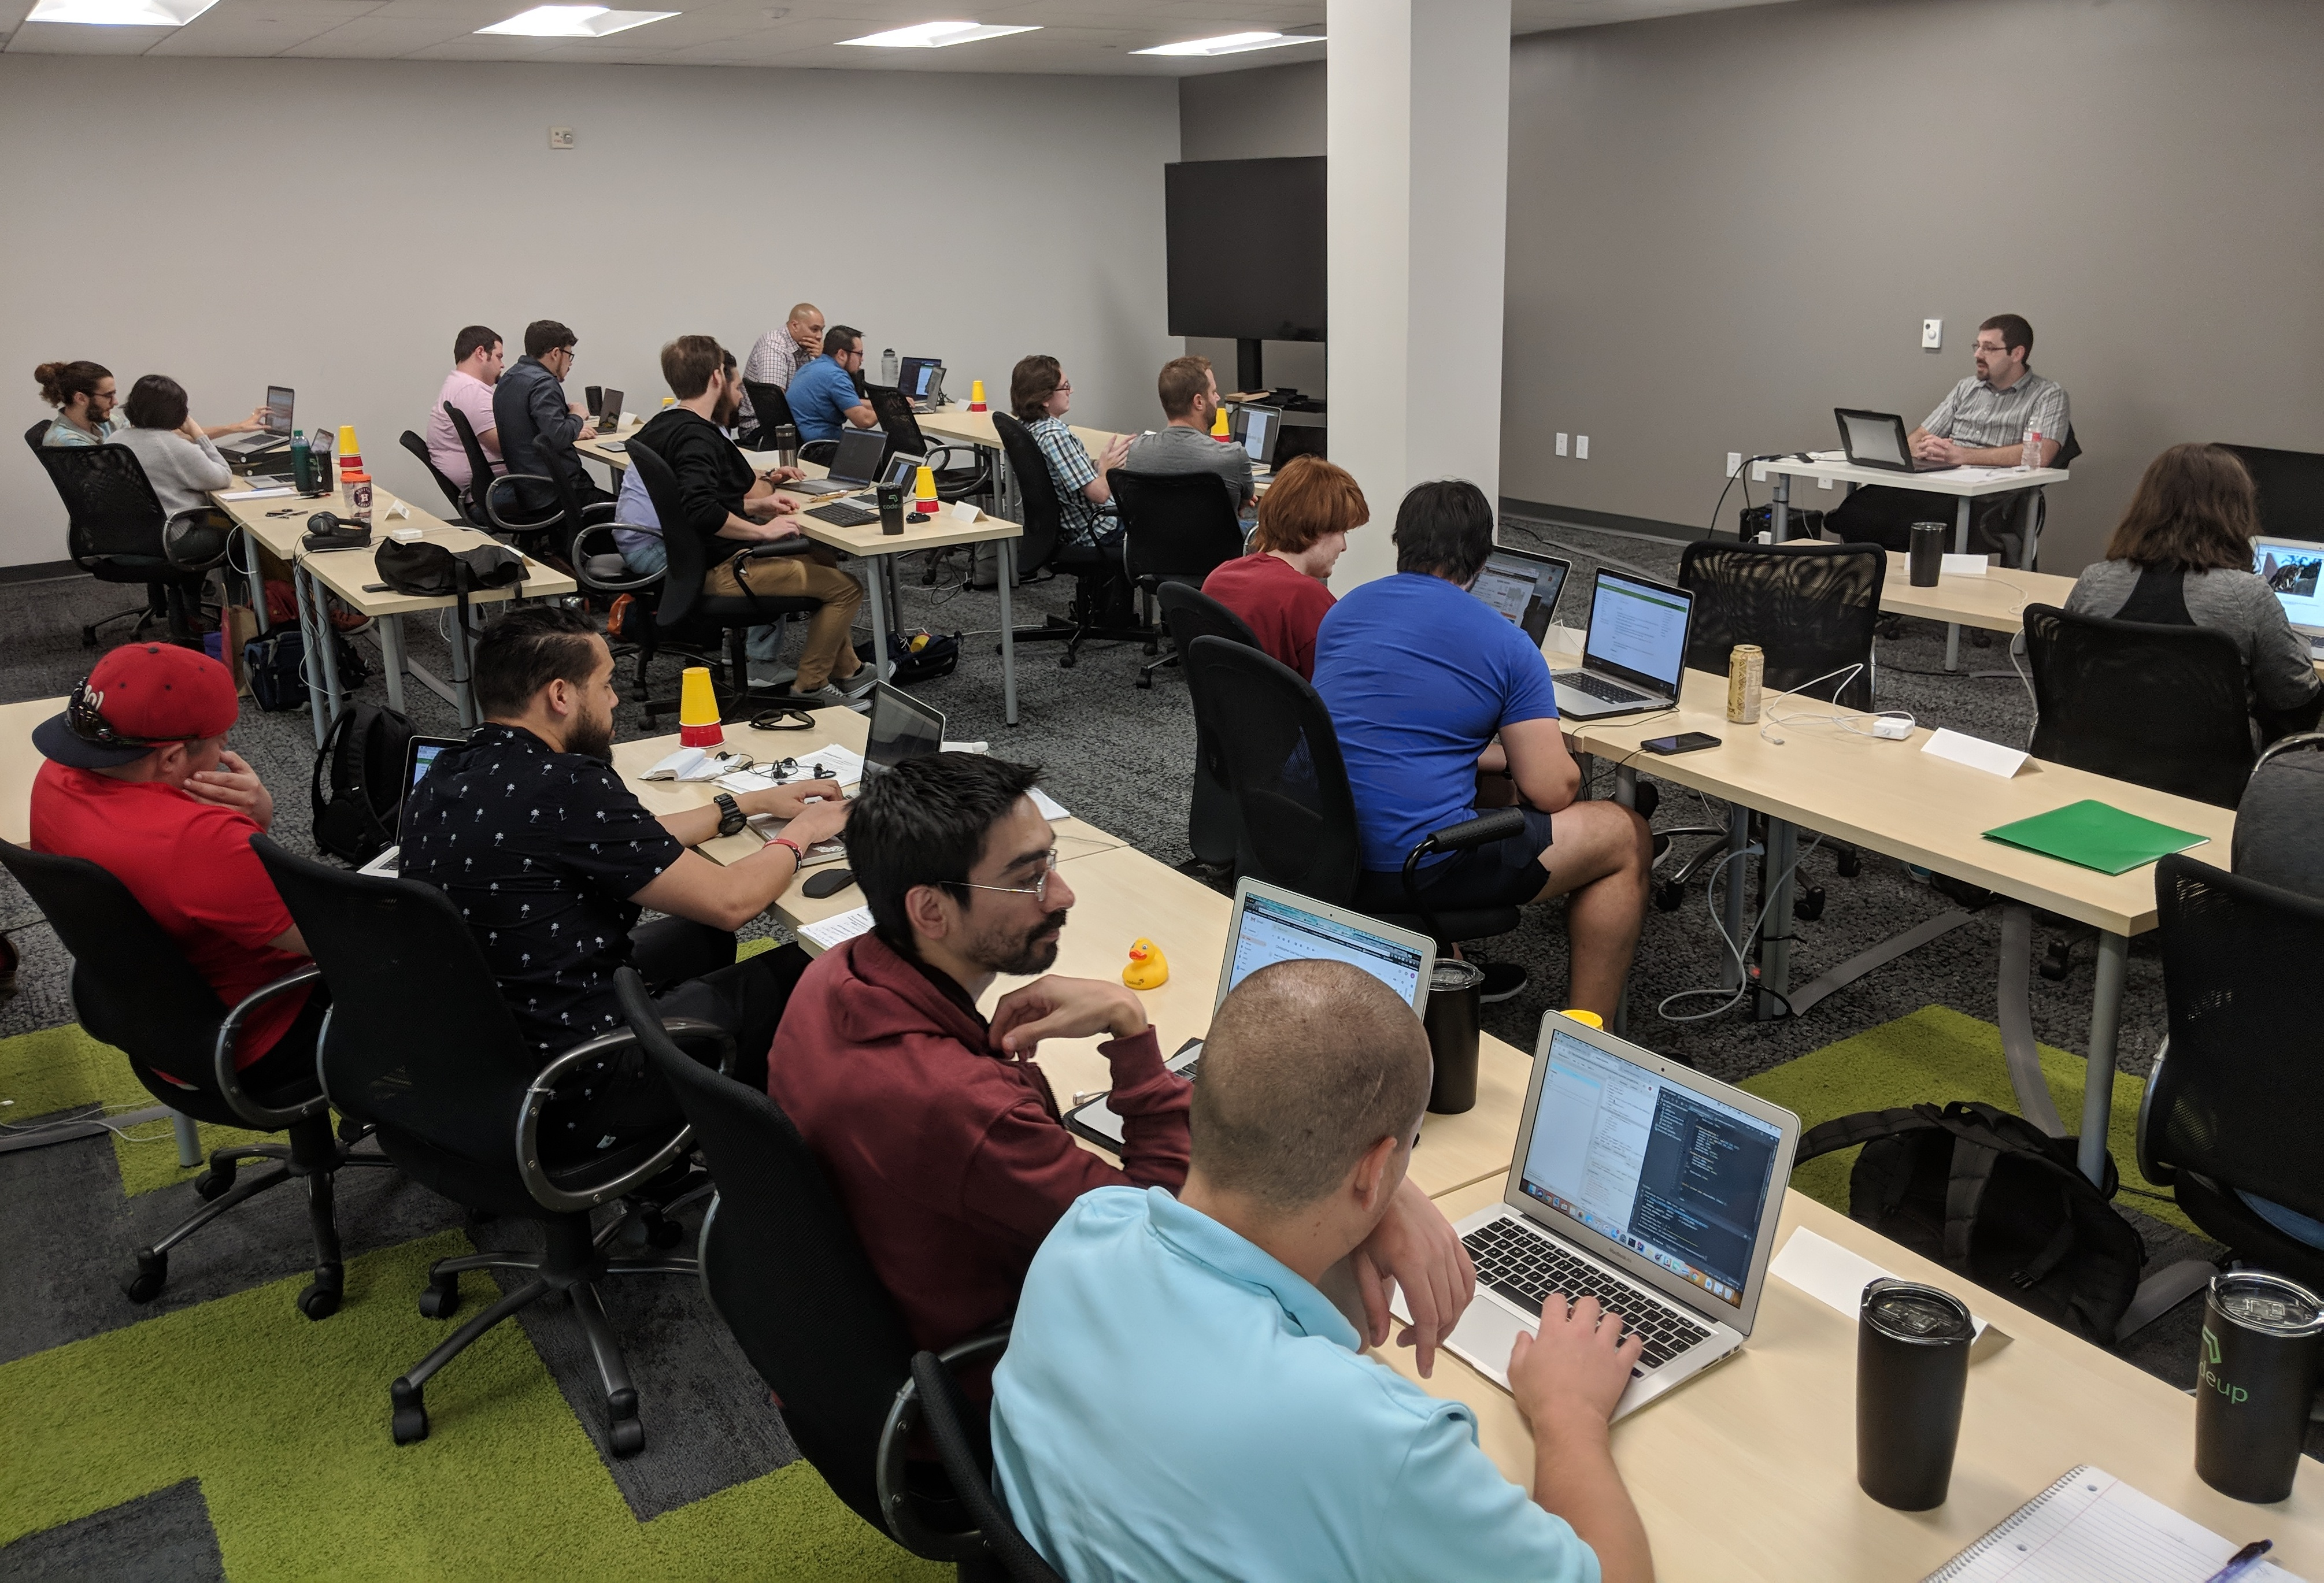 A class of students learn software development at CodeUp.